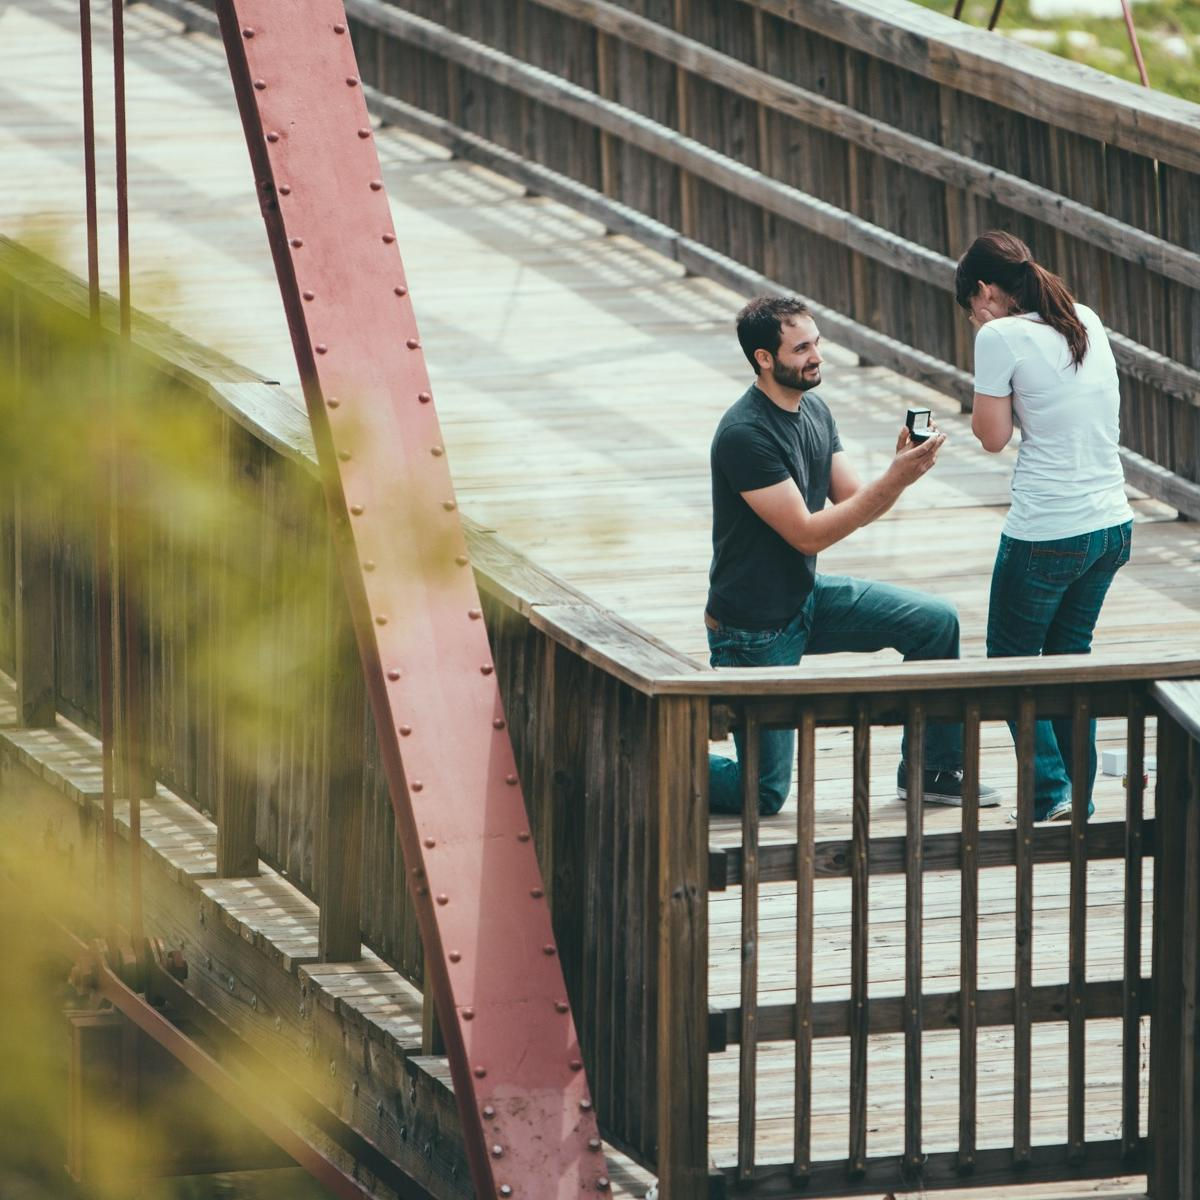 Bridge Engagement - Casual Proposal